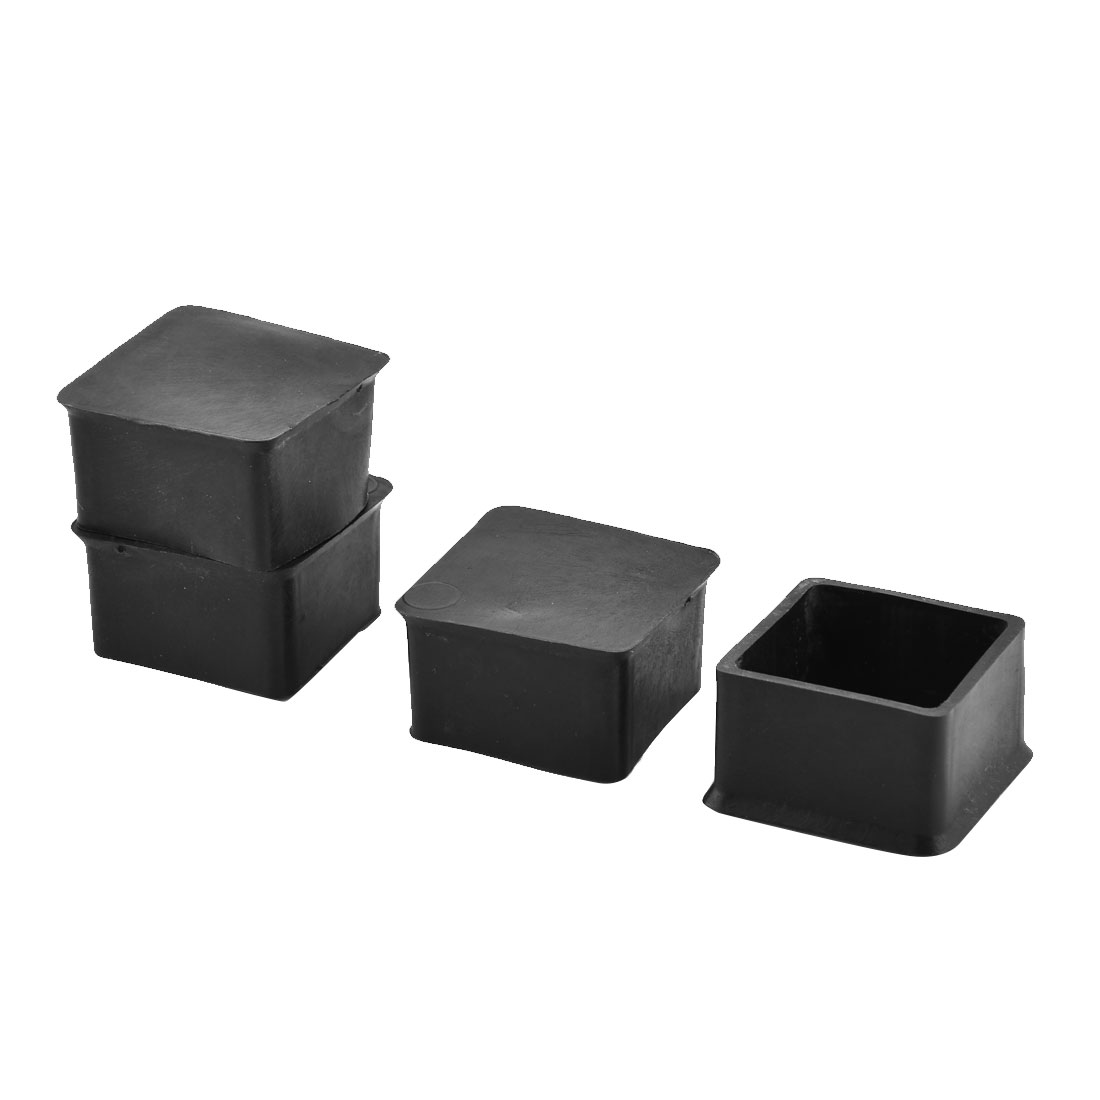 Household Rubber Square Furniture Desk Foot Cover Protecor Black 45 x 45mm 4pcs